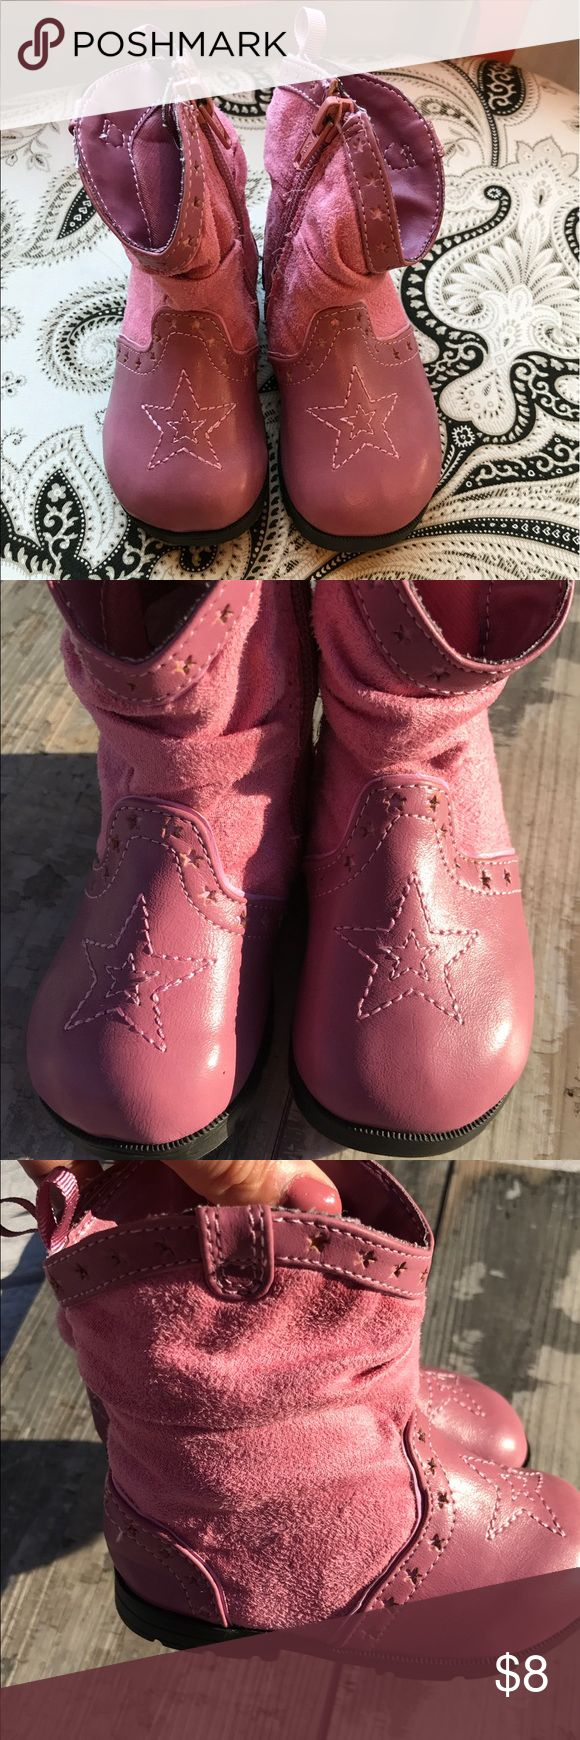 Toddler pink cowgirl boots Adorable pink cowgirl boots by Faded Glory, gently worn but we'll take with no signs of wear and tear.  Side zip,star detail on toe. Size 5 toddler, Smoke free home Faded Glory Shoes Boots